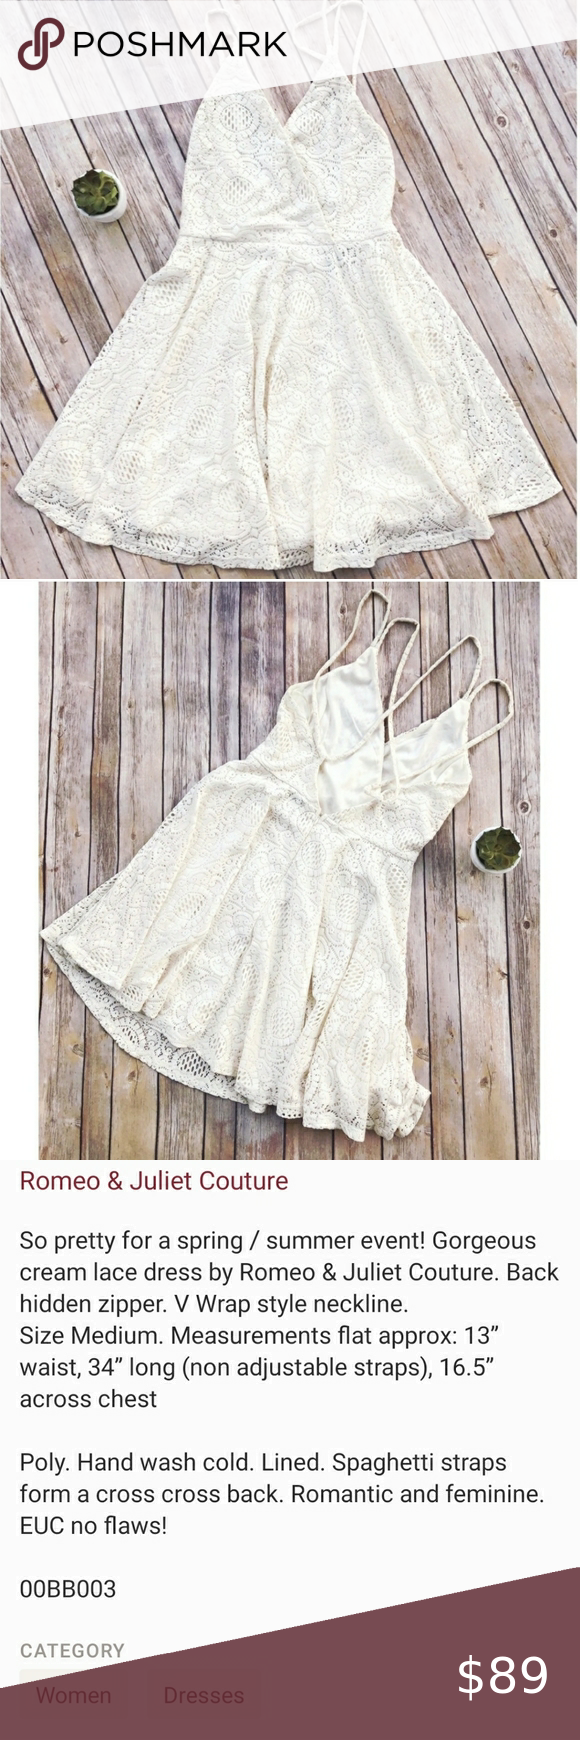 Romeo Juliet Couture White Lace Slip Dress In 2021 Lace Slip Dress White Floral Lace Dress Cocktail Dress Lace [ 1740 x 580 Pixel ]